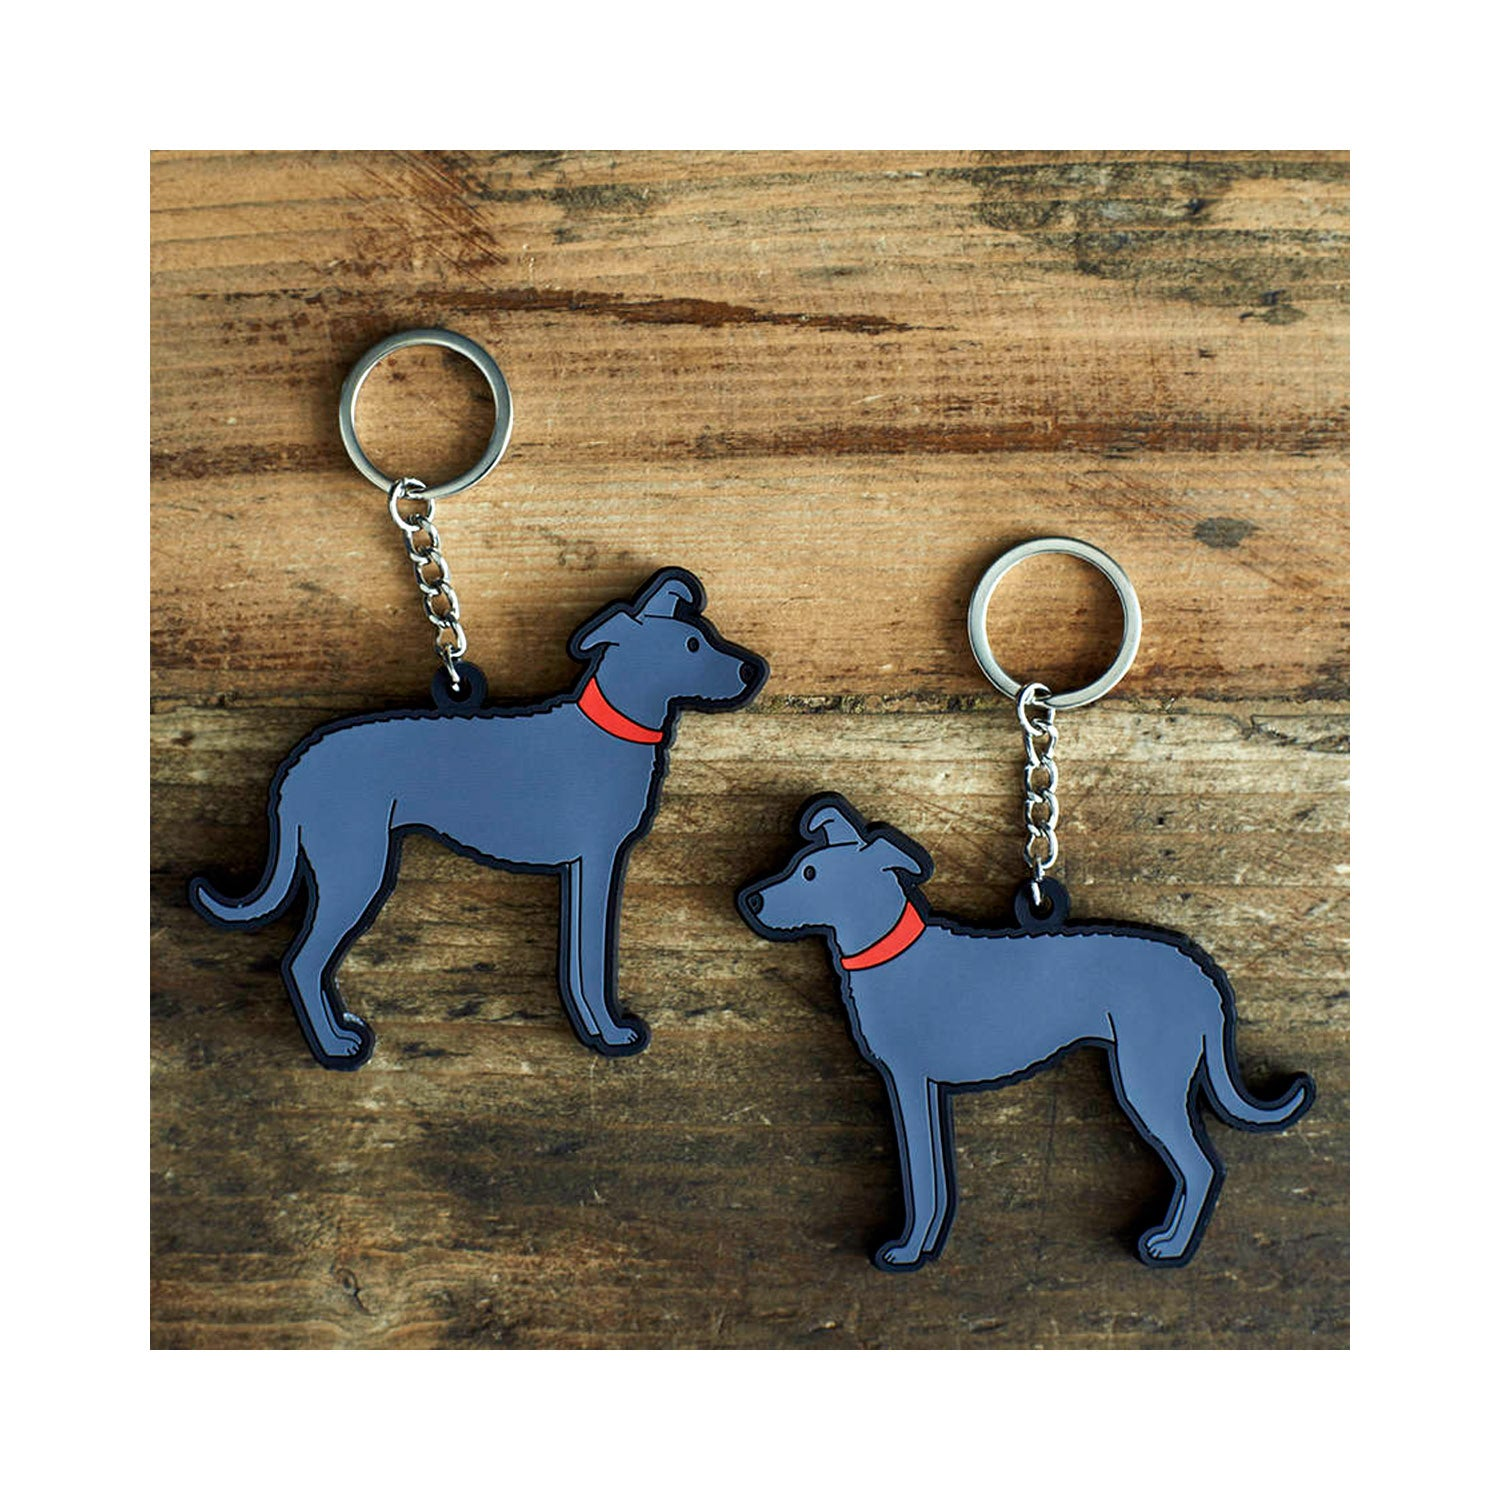 Dog Lover Gifts available at Dog Krazy Gifts - Arthur The Lurcher - part of the Sweet William range available from Dog Krazy Gifts